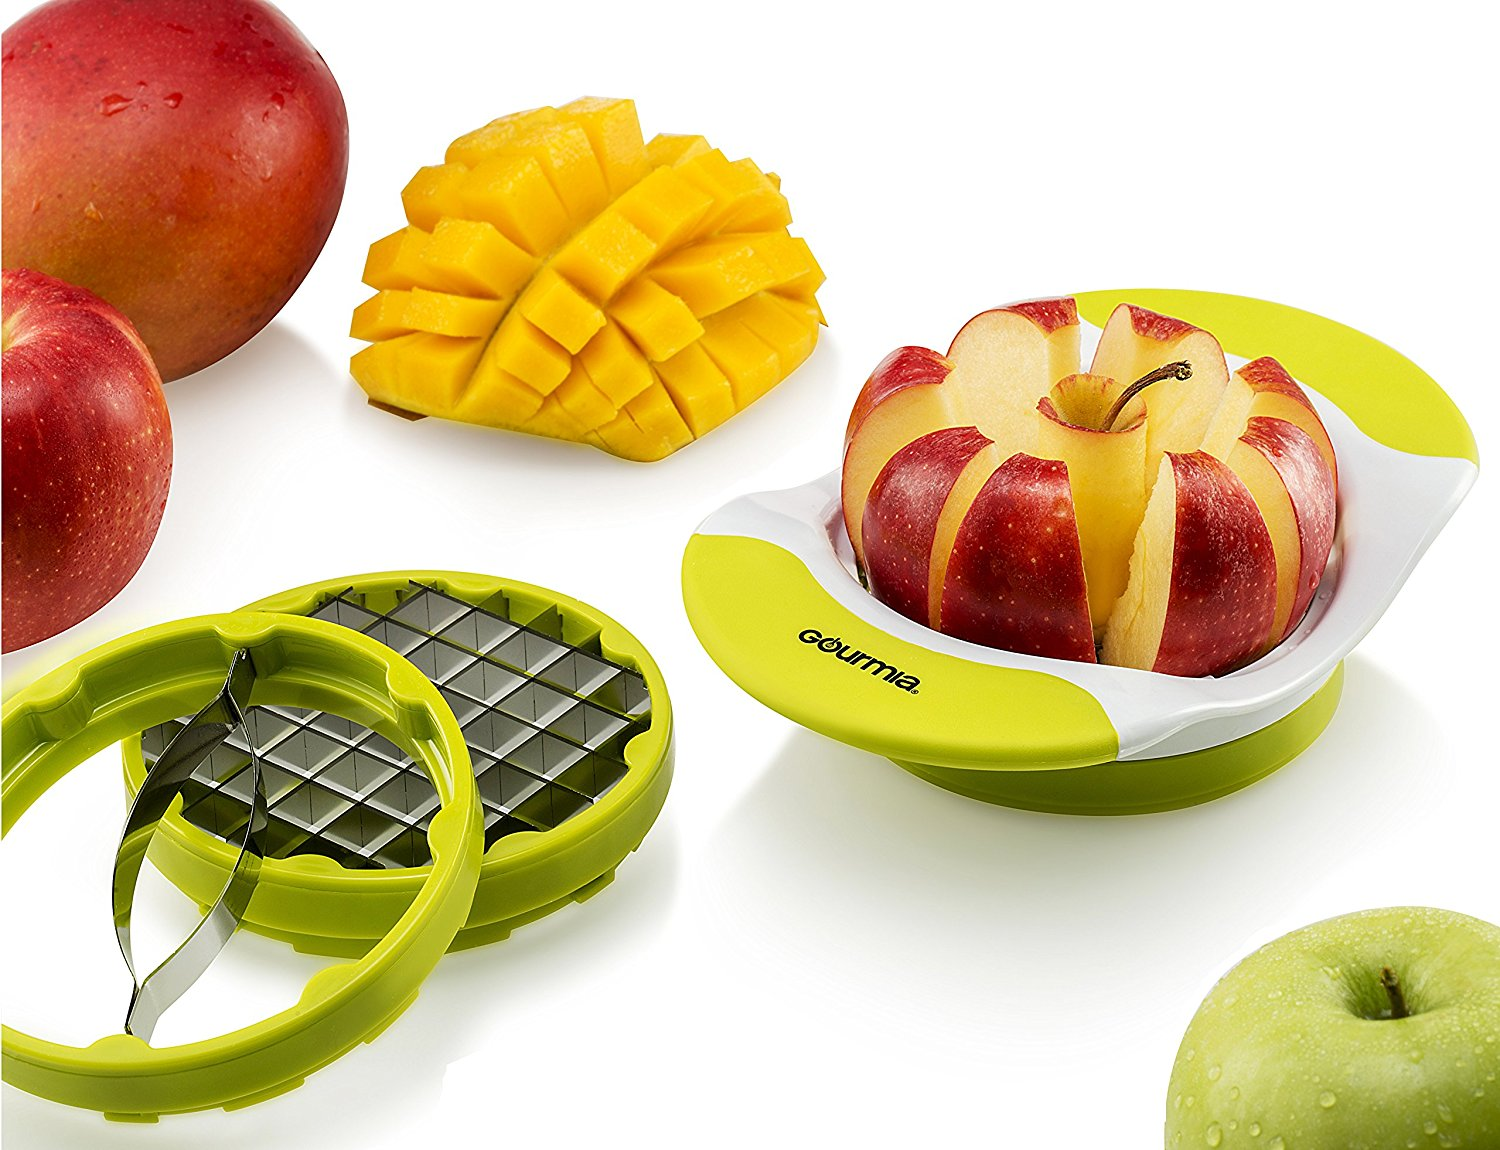 Gourmia Handle Push Cutter cutting apples and mangos.